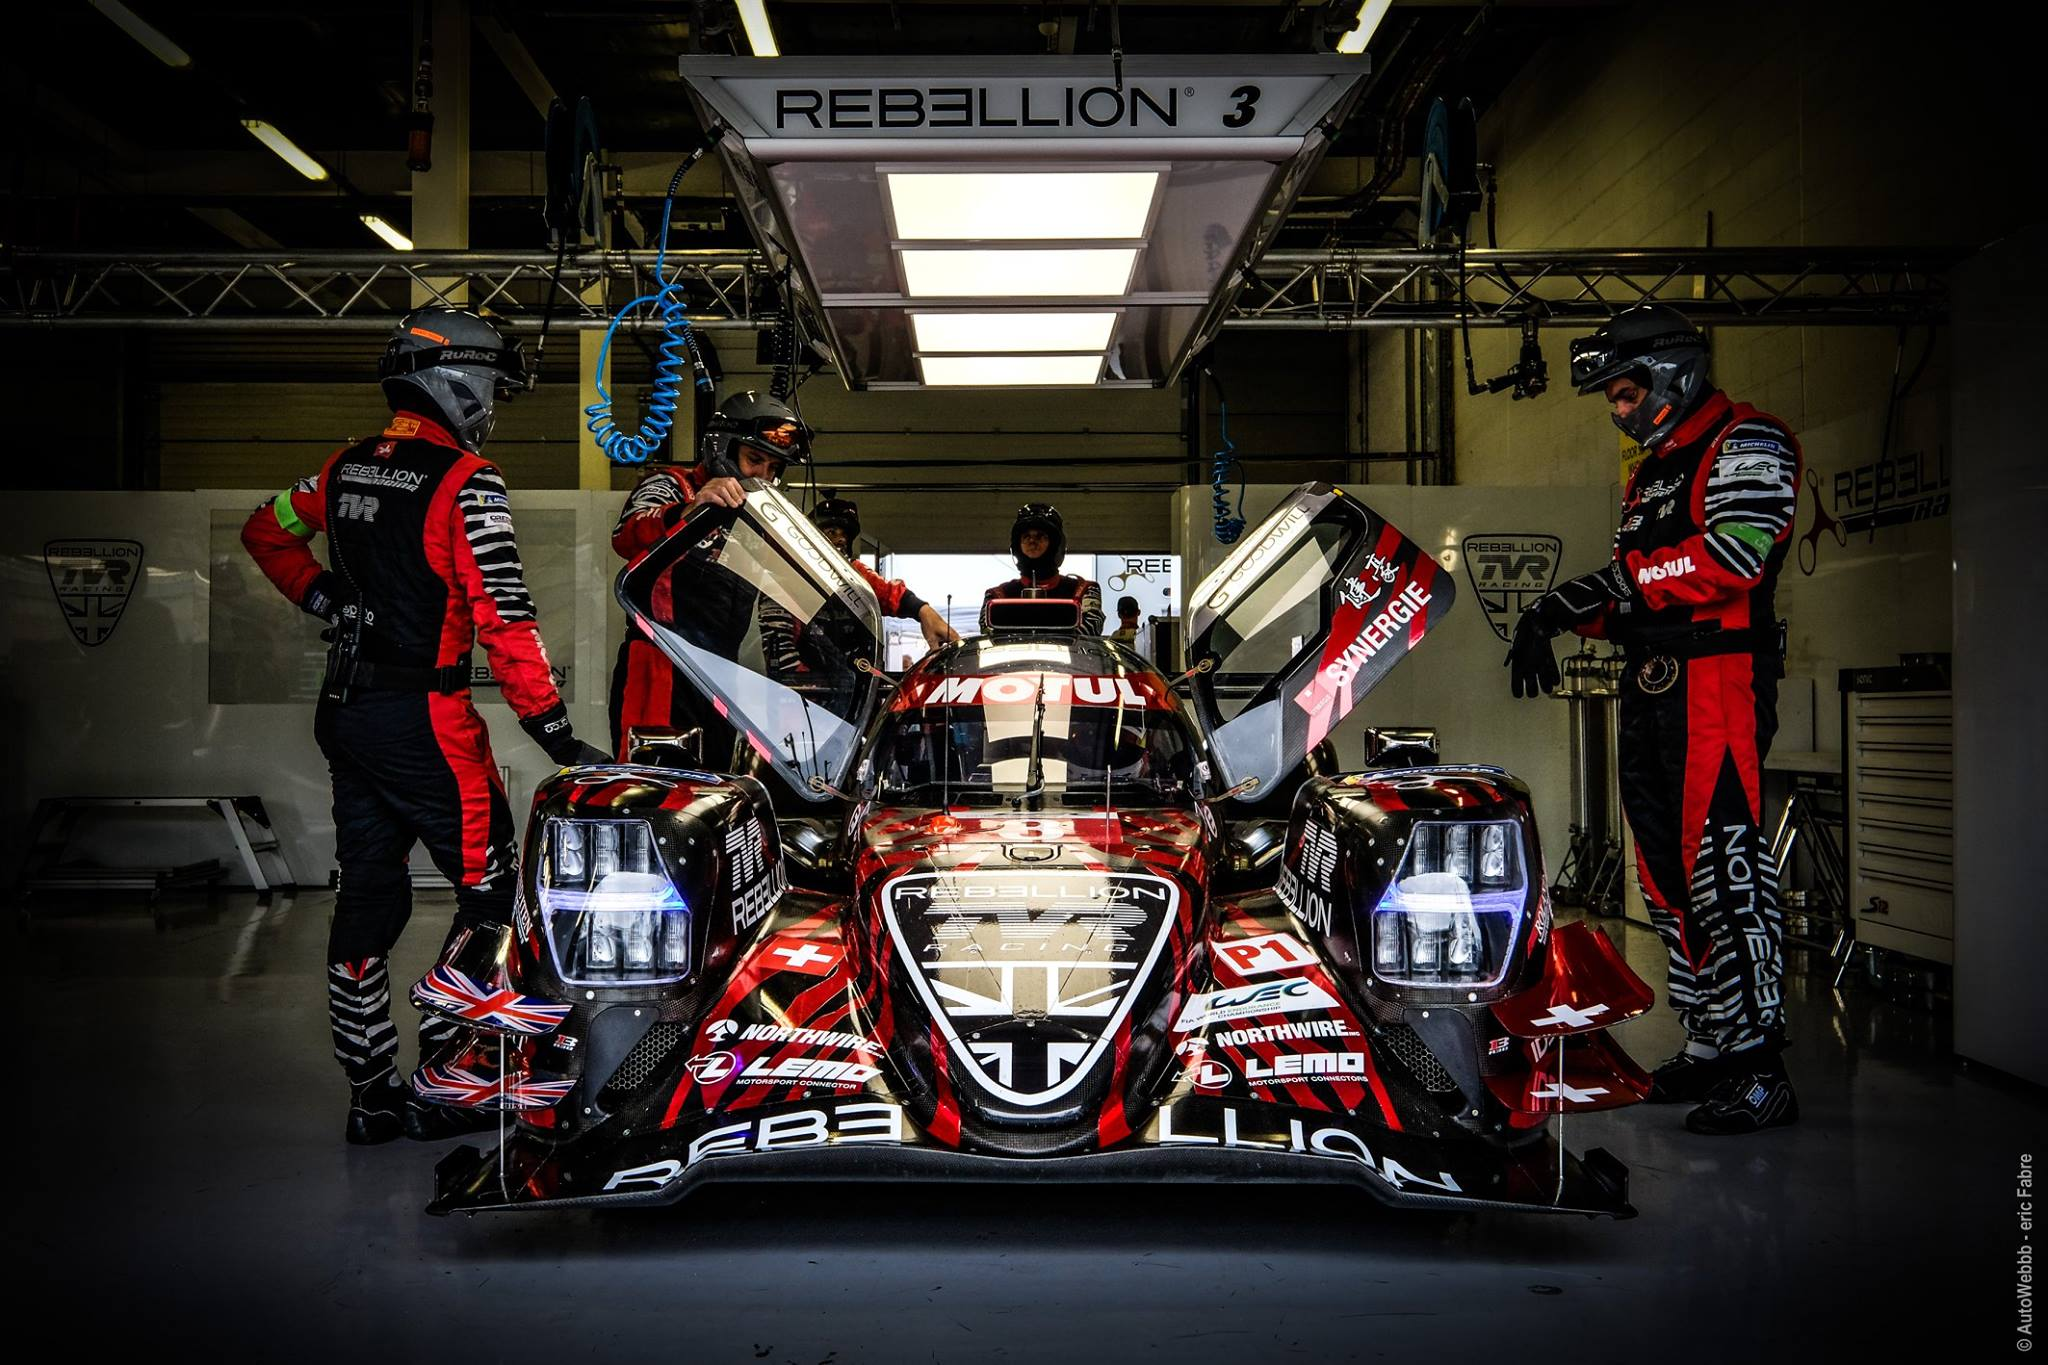 Rebellion gets surprise win at Silverstone.